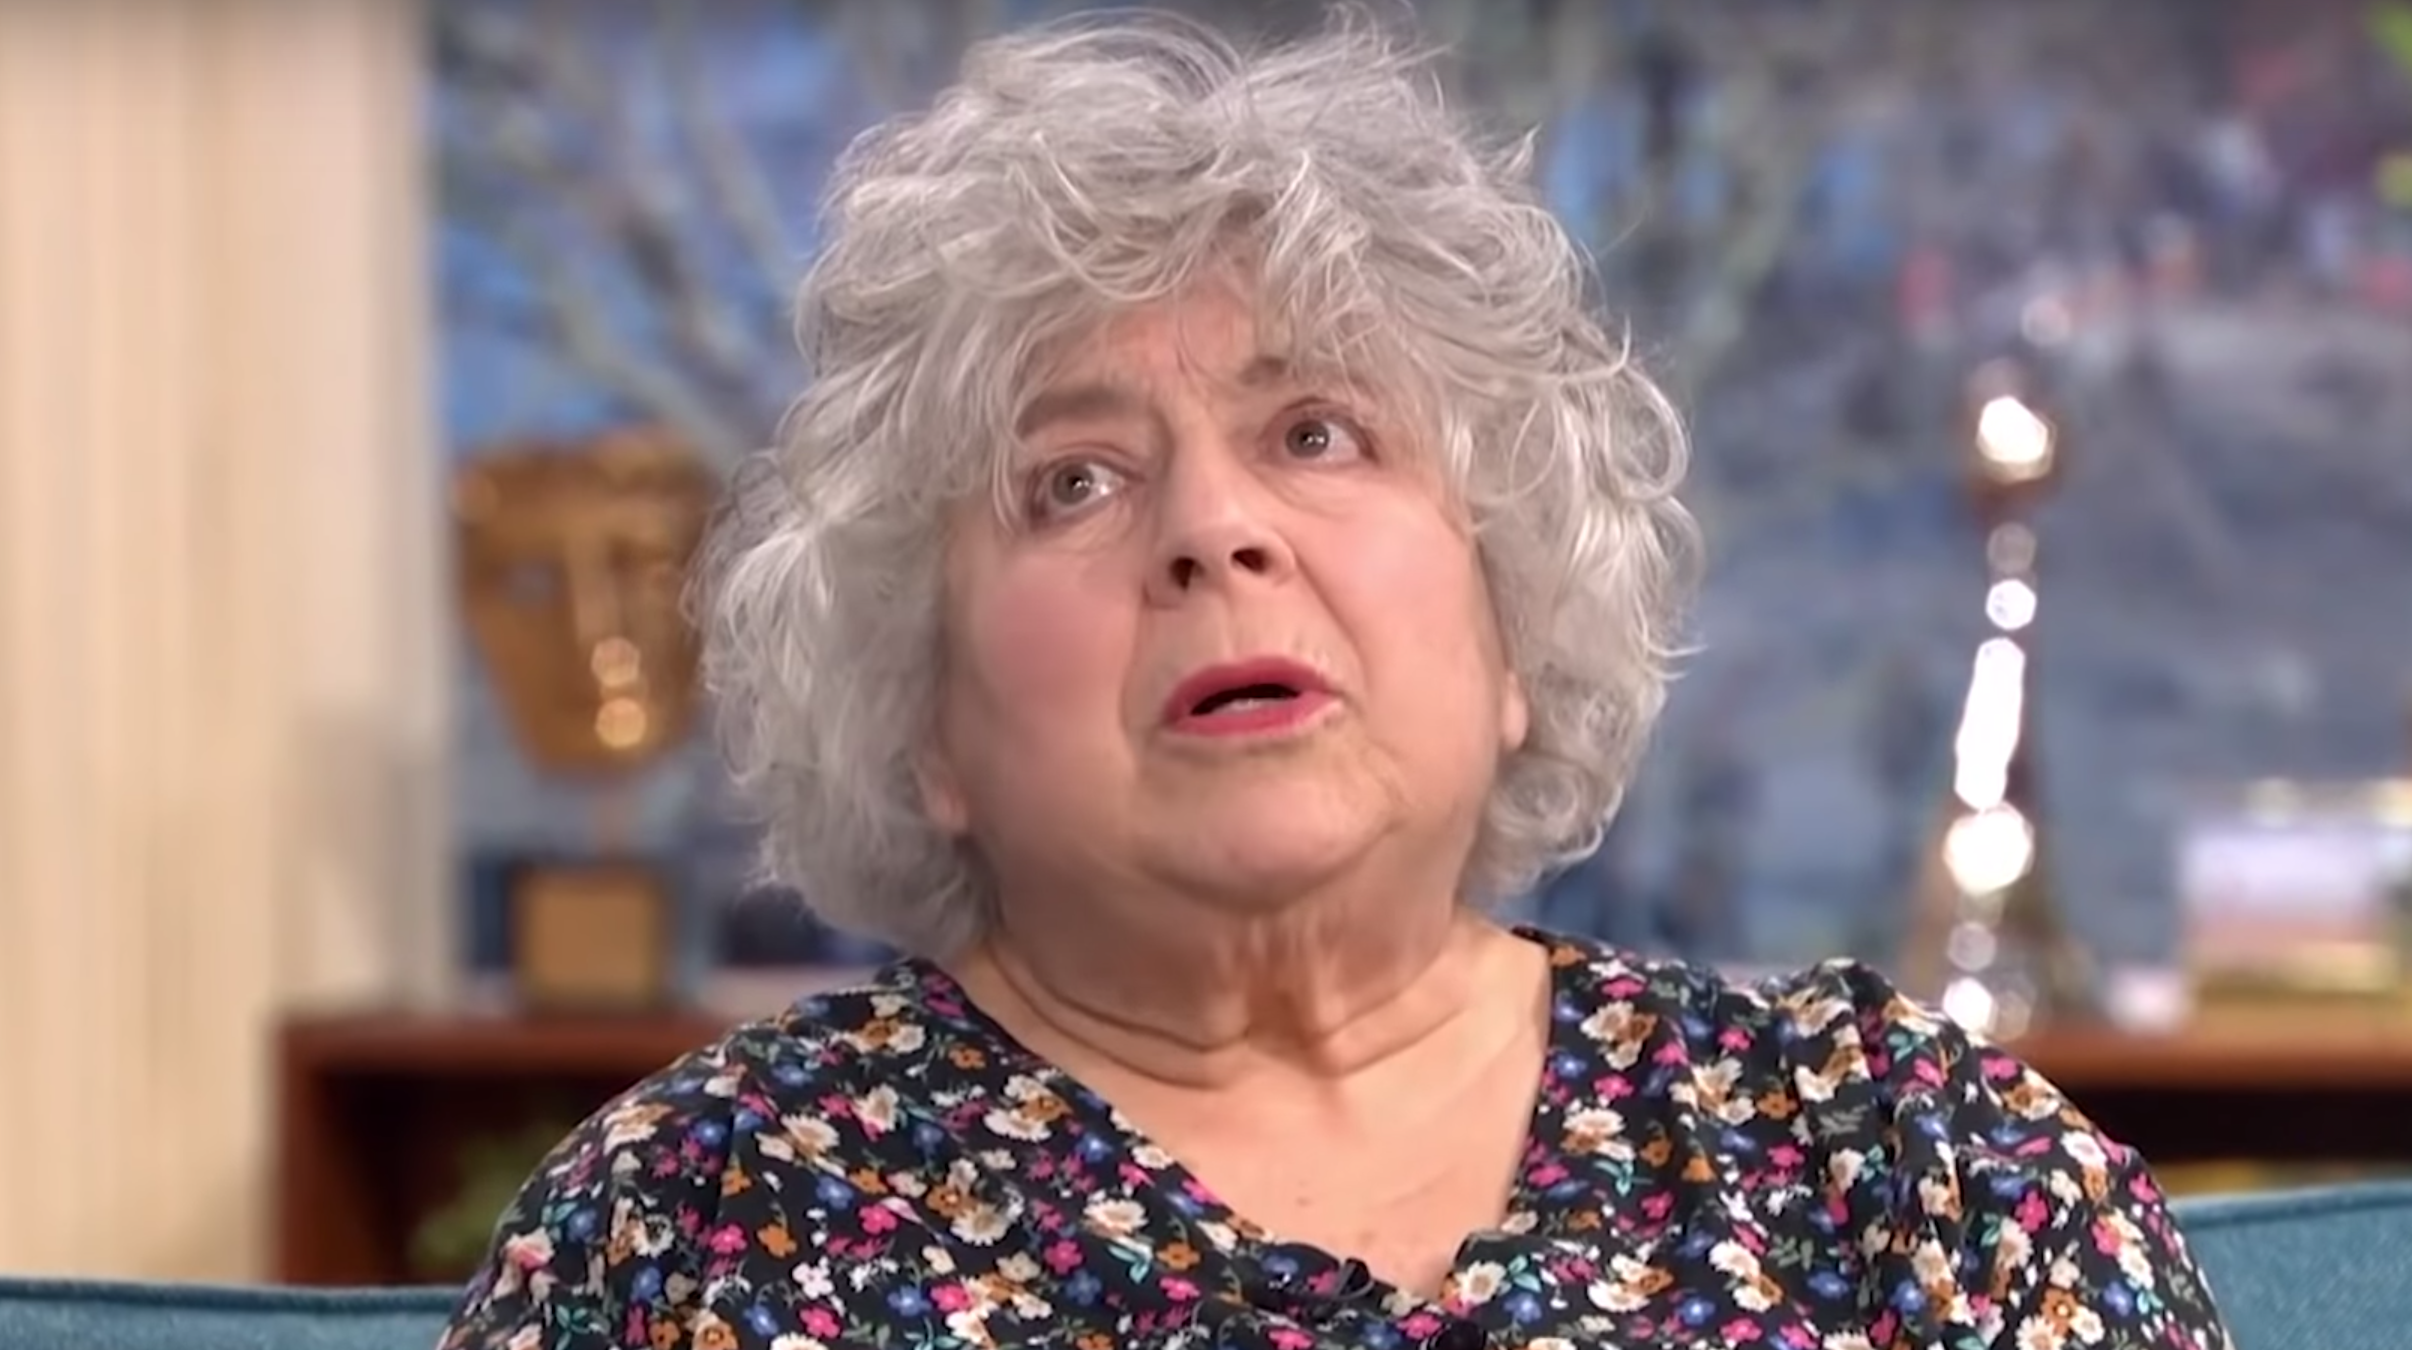 Miriam Margolyes swears on This Morning as she discusses how she 'loathes' her body